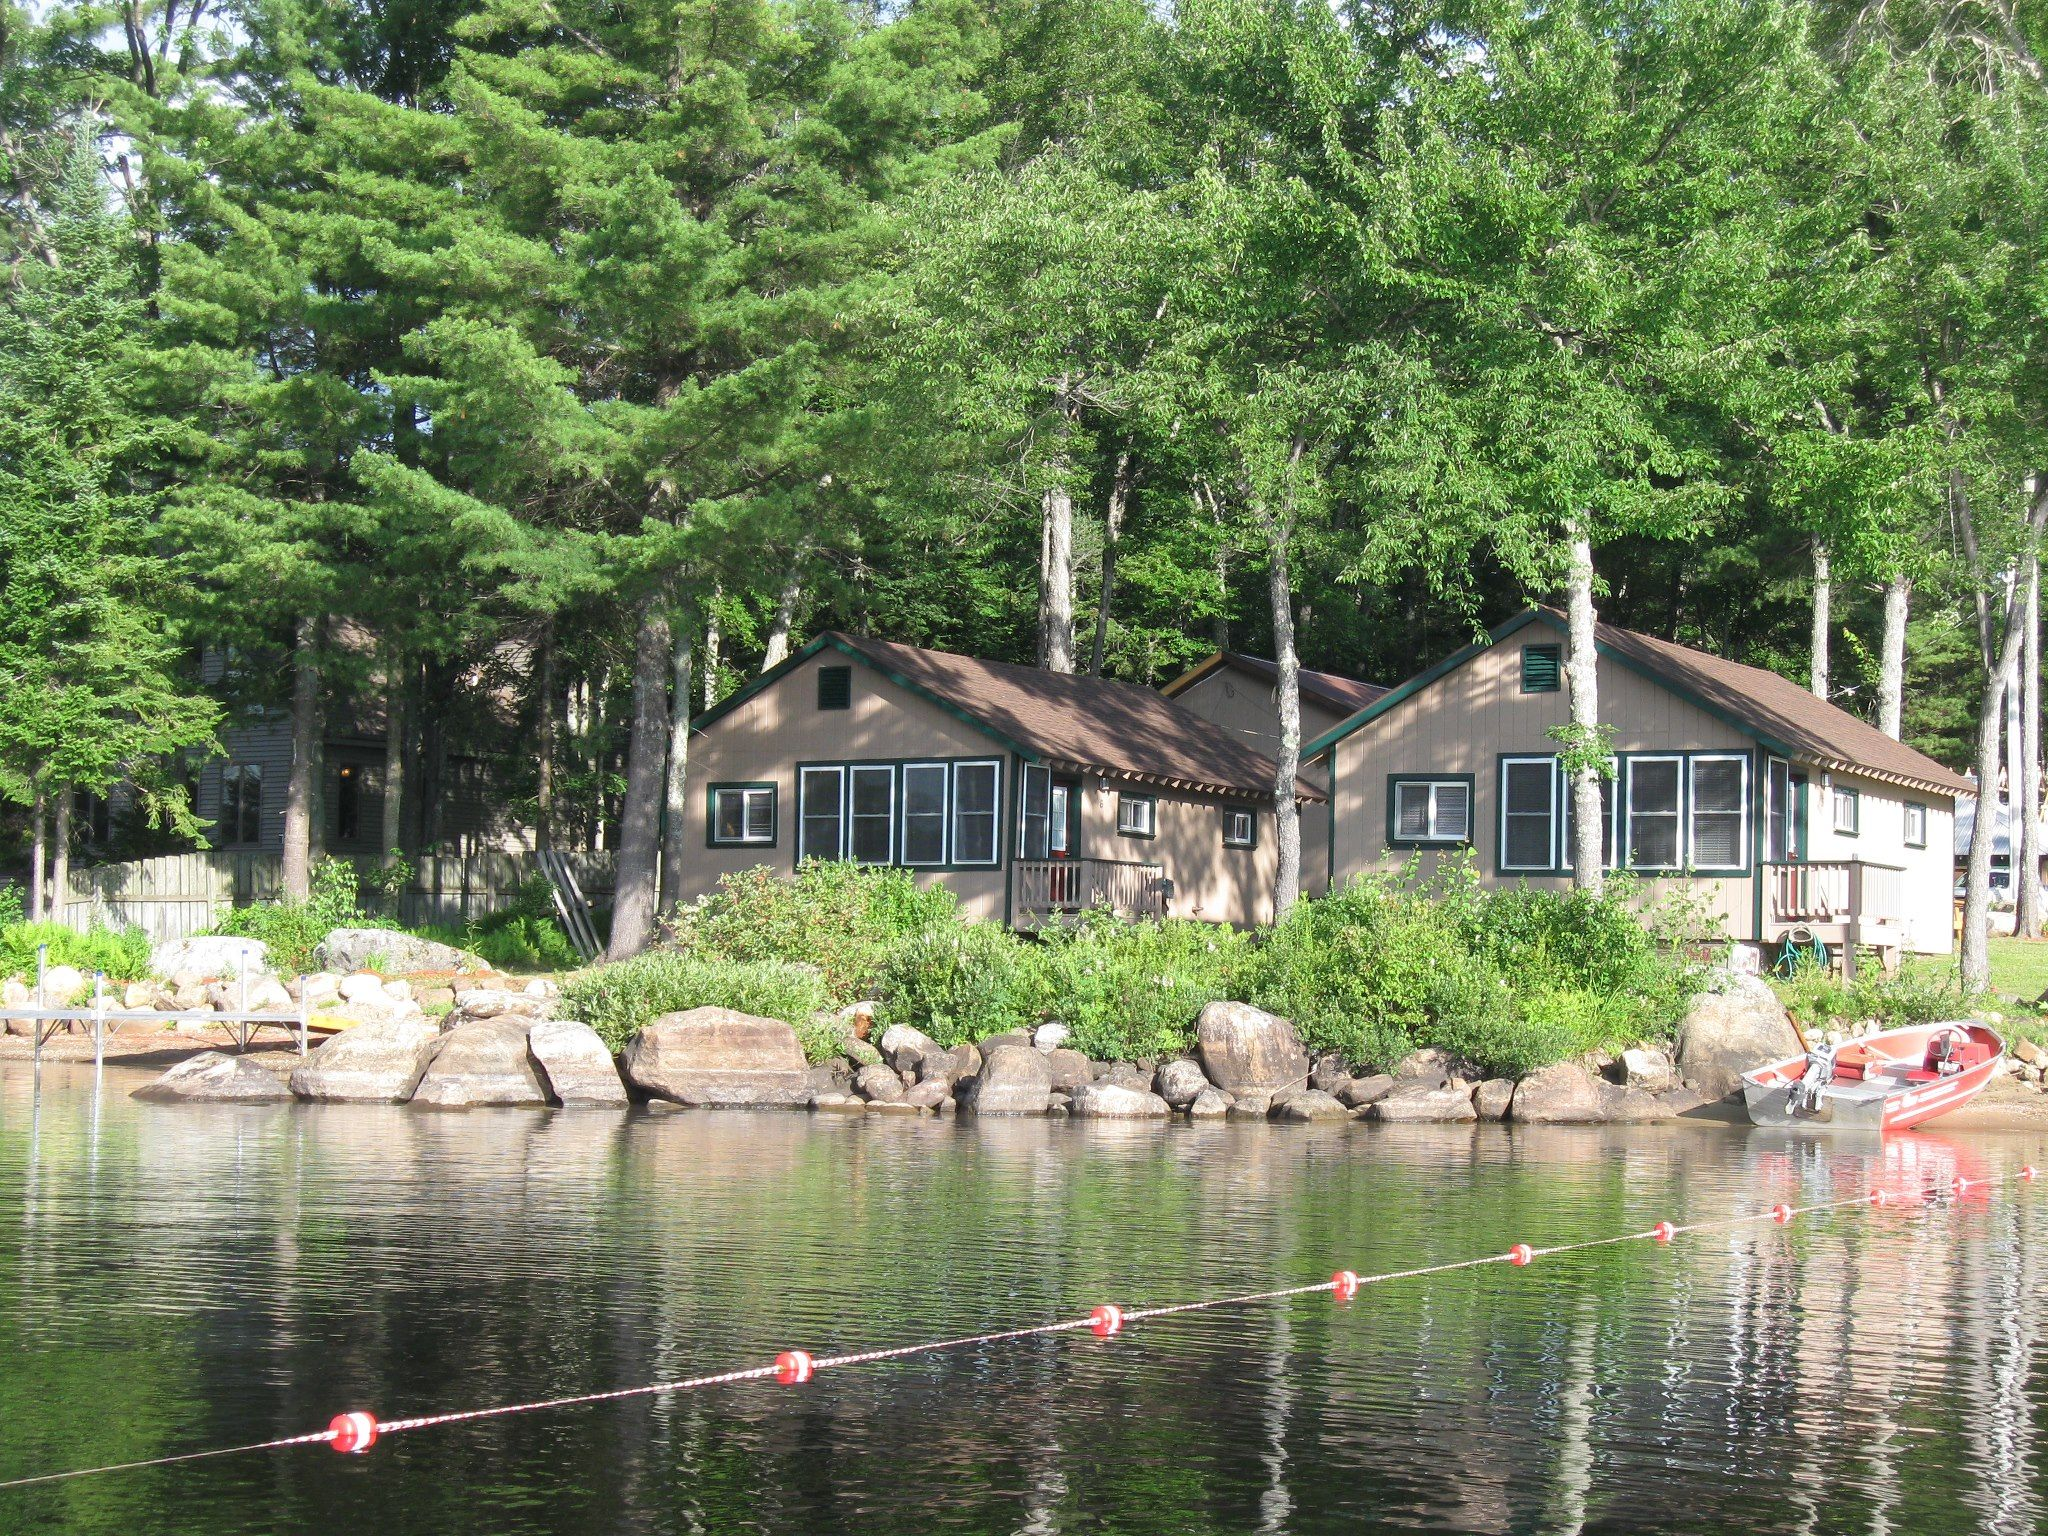 luxury an north all off adirondacks inclusive rustic cabin rentals lakefront vacation shore cabins log lodge pin saranac cottage and is dry of adirondack upper rental island boathouse